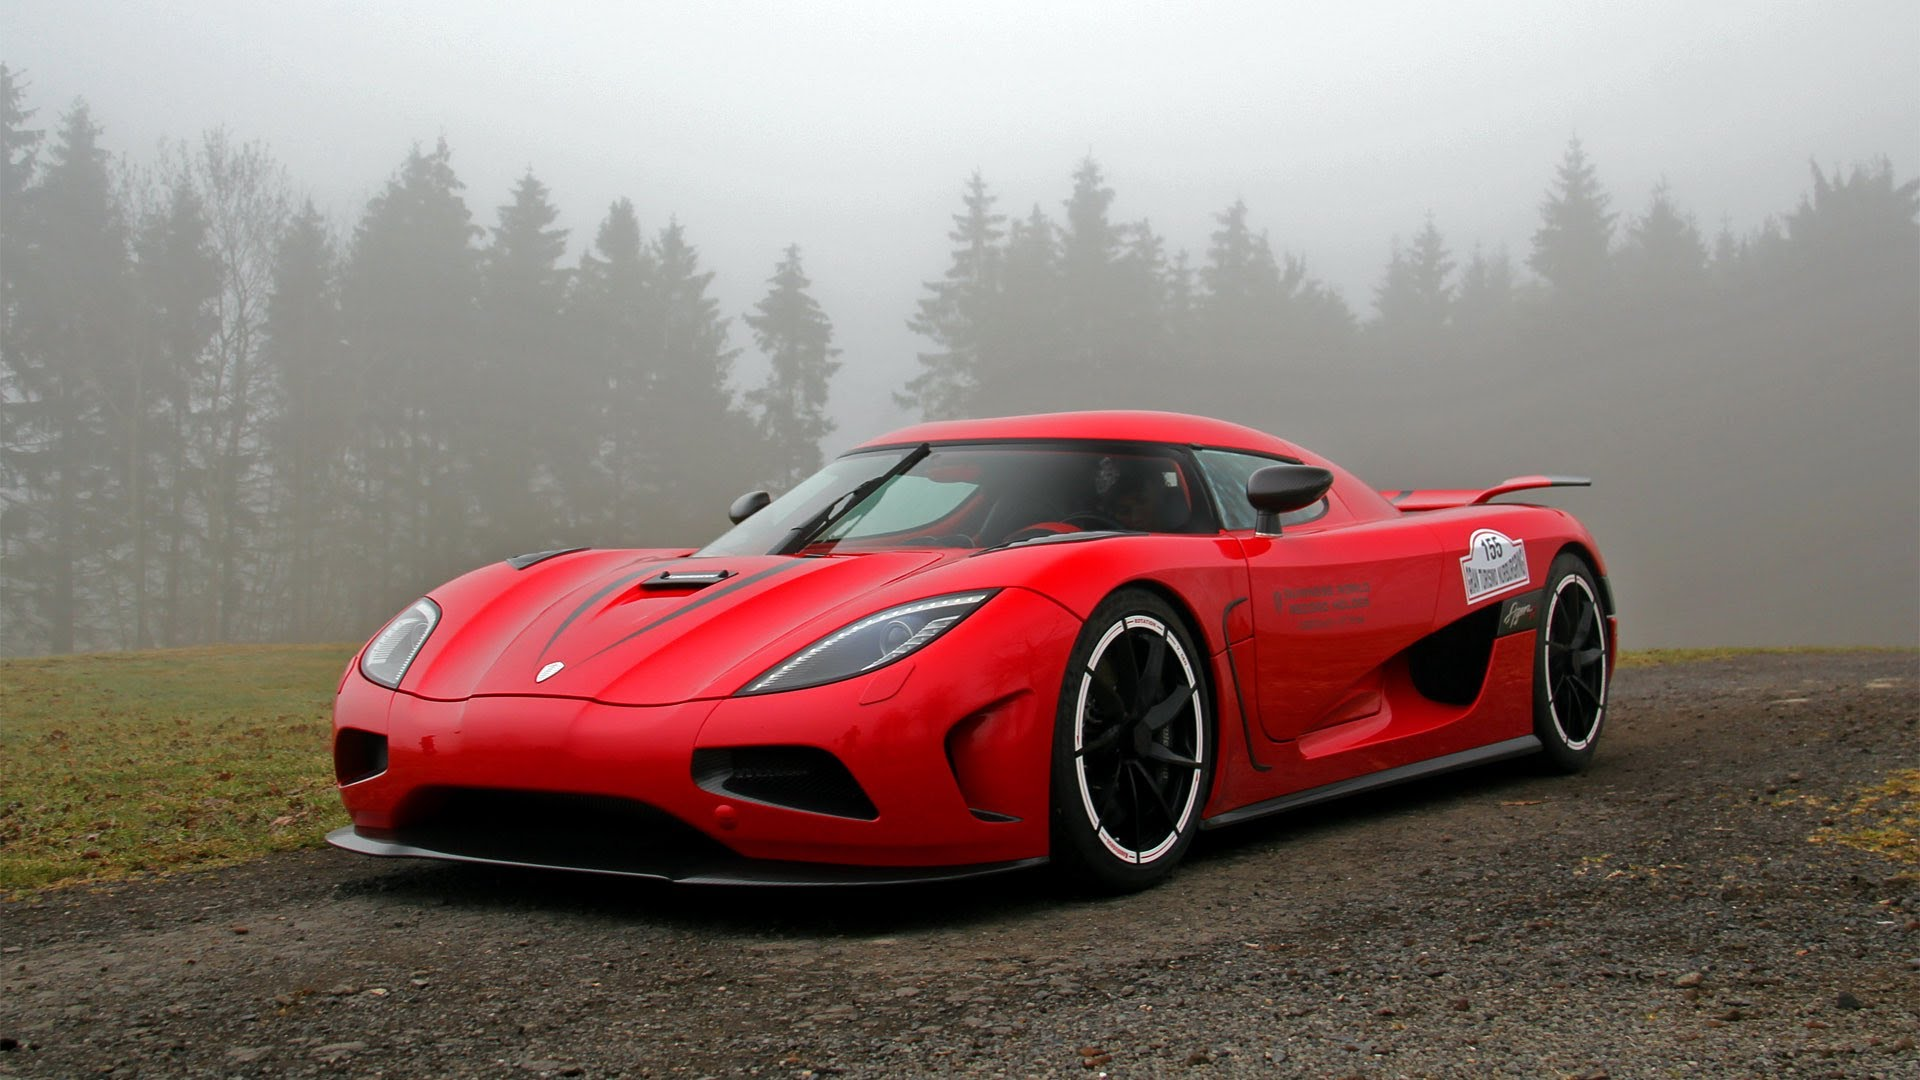 Koenigsegg Agera R HQ Wallpapers Koenigsegg Agera R Desktop Wallpapers